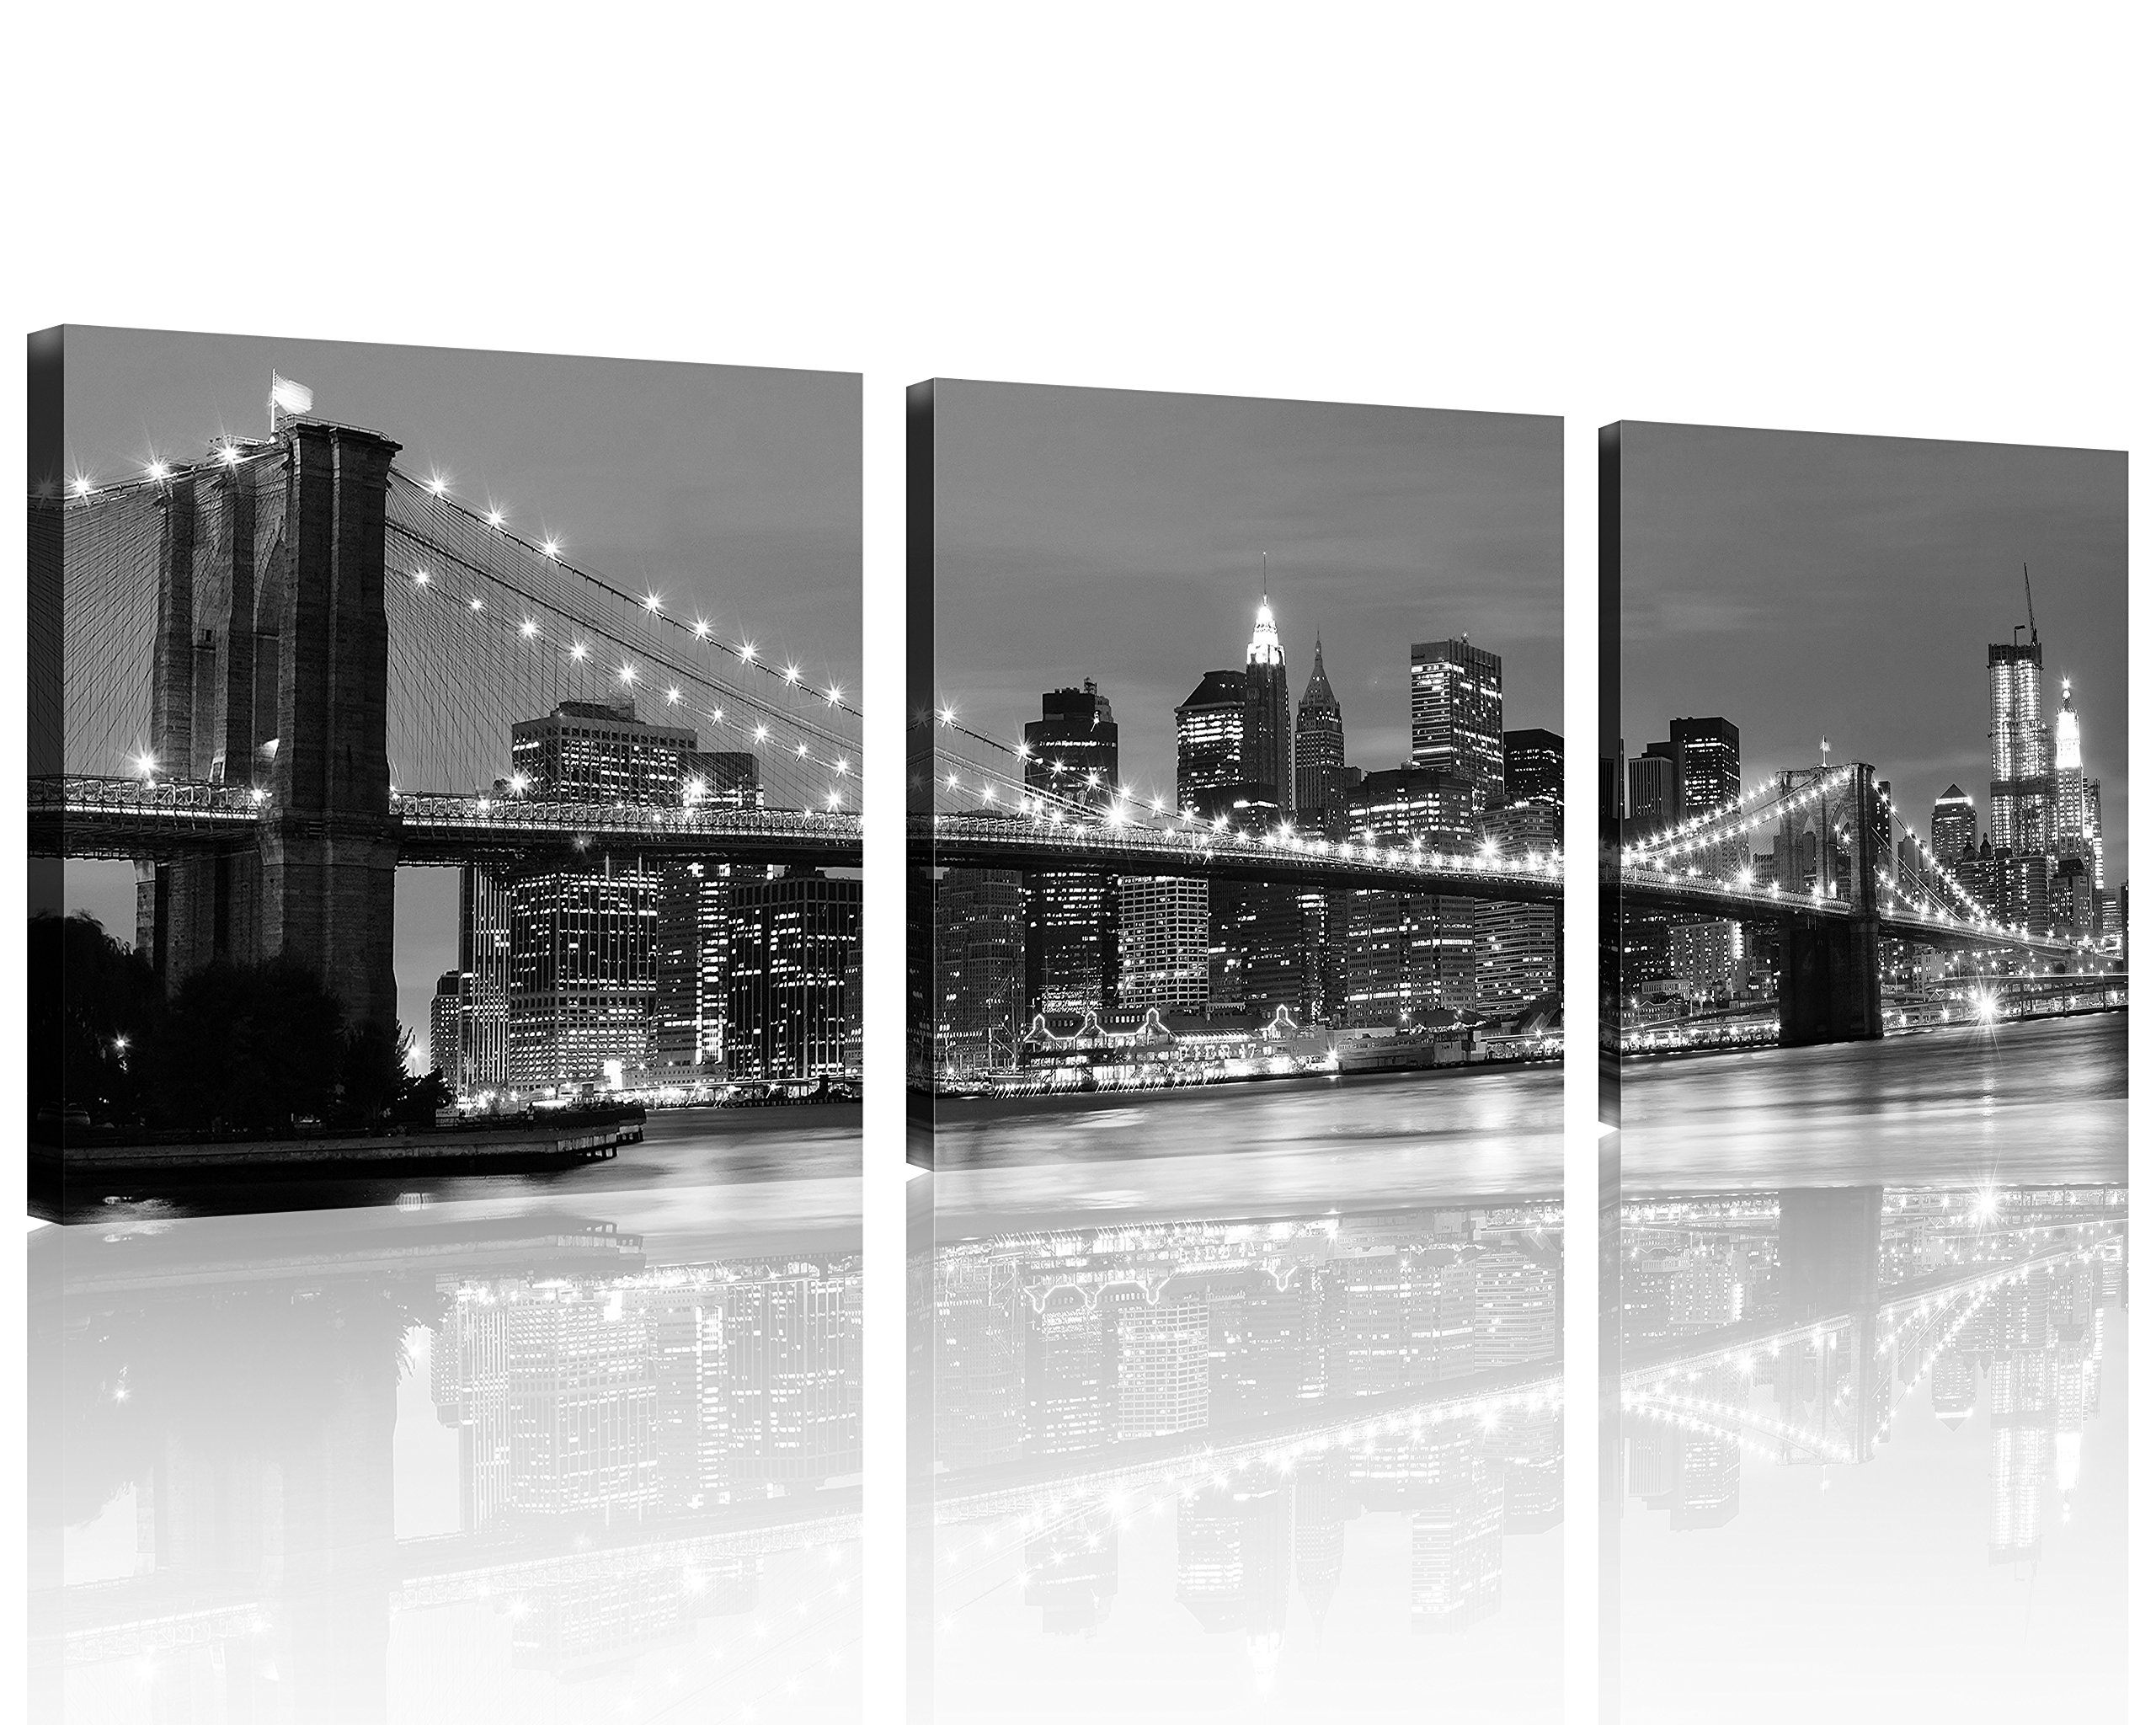 QICAI 3 Panel New York Skyline Wall Art New York Wall Art NYC Wall Art Black and White Manhattan Skyline and Brooklyn Bridge Canvas Art Home Decor Stretched and Framed for Home Wall Decor,3 Panel/Set